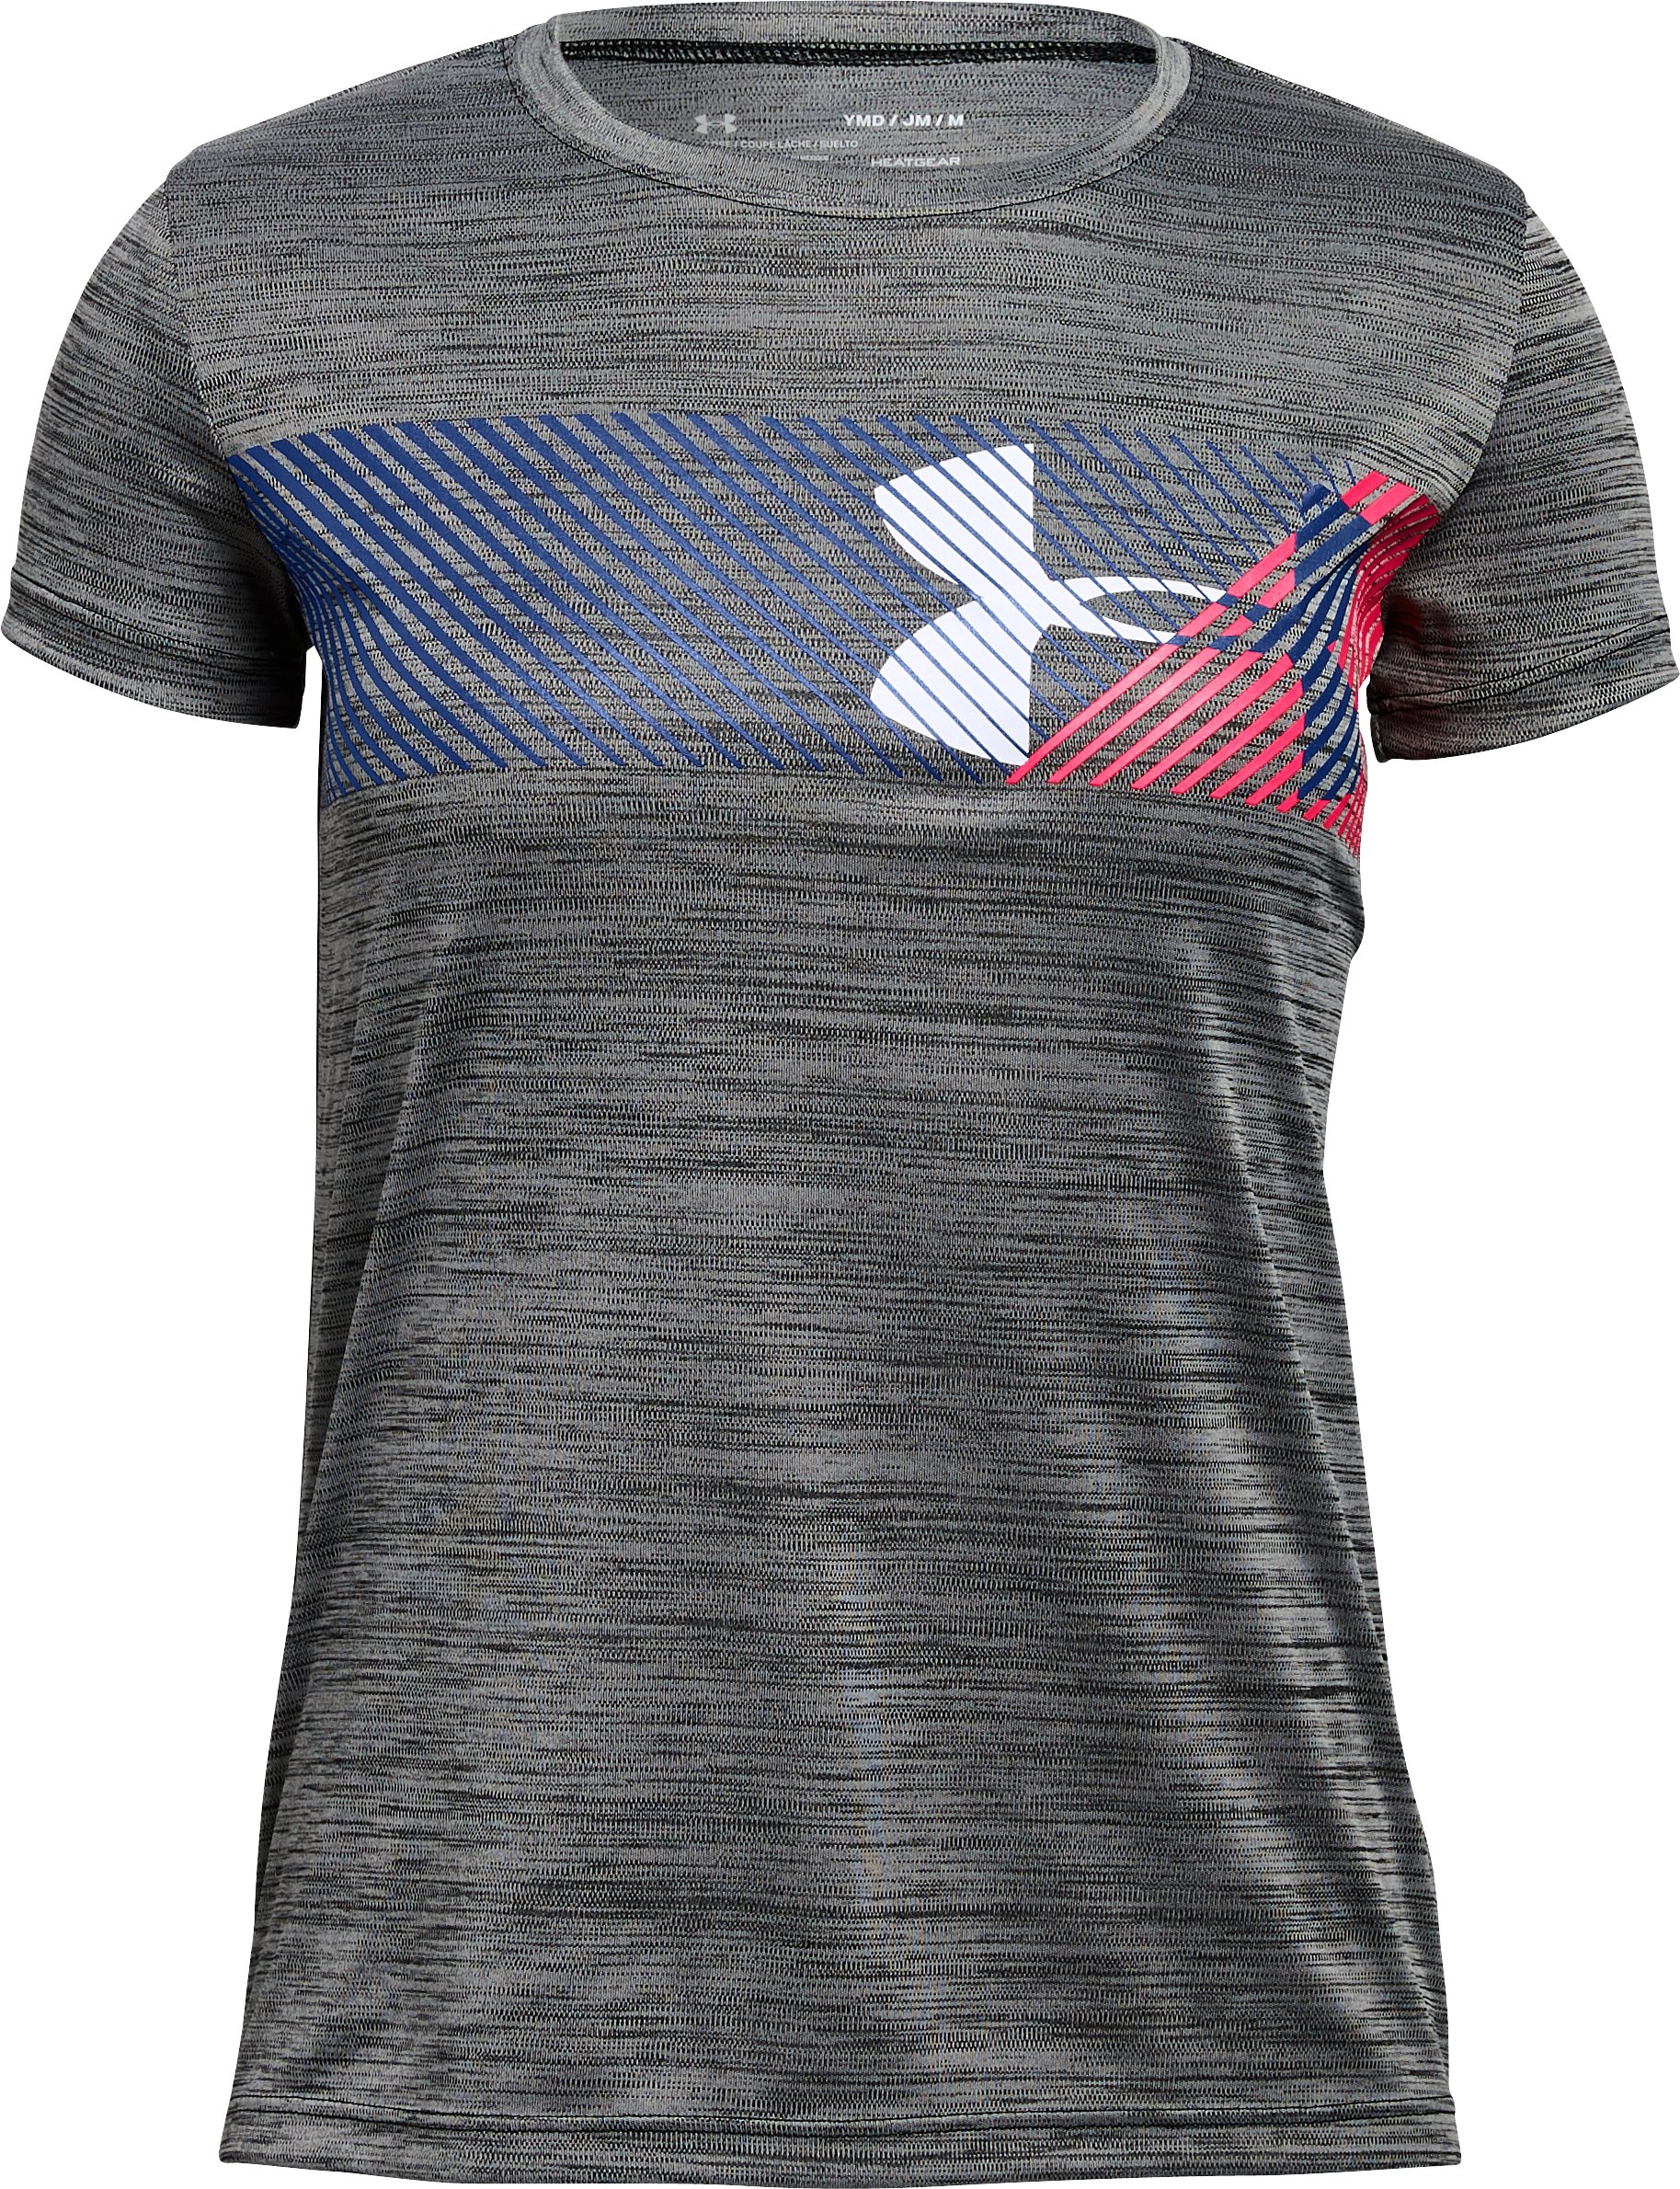 Girls' UA Hybrid Big Logo T-Shirt 2 Colors $12.00 - $15.00